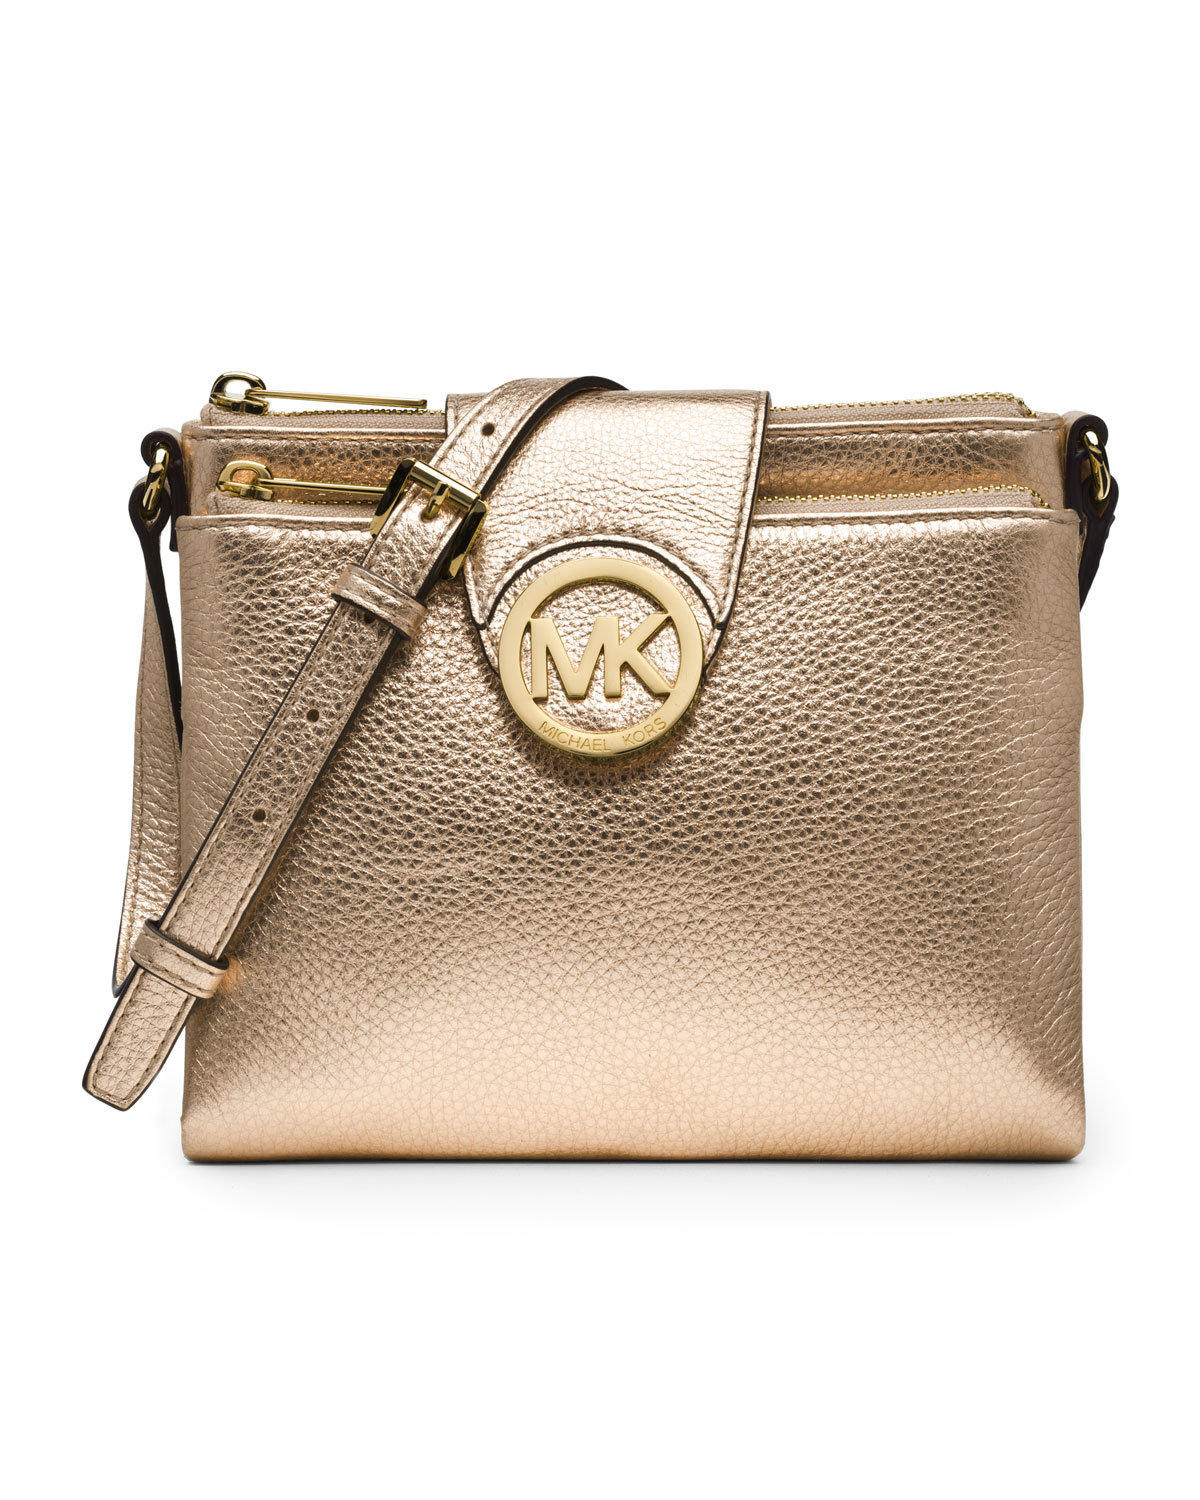 6a0b300f8fea Gallery. Previously sold at: Neiman Marcus · Women's Michael By Michael  Kors Fulton